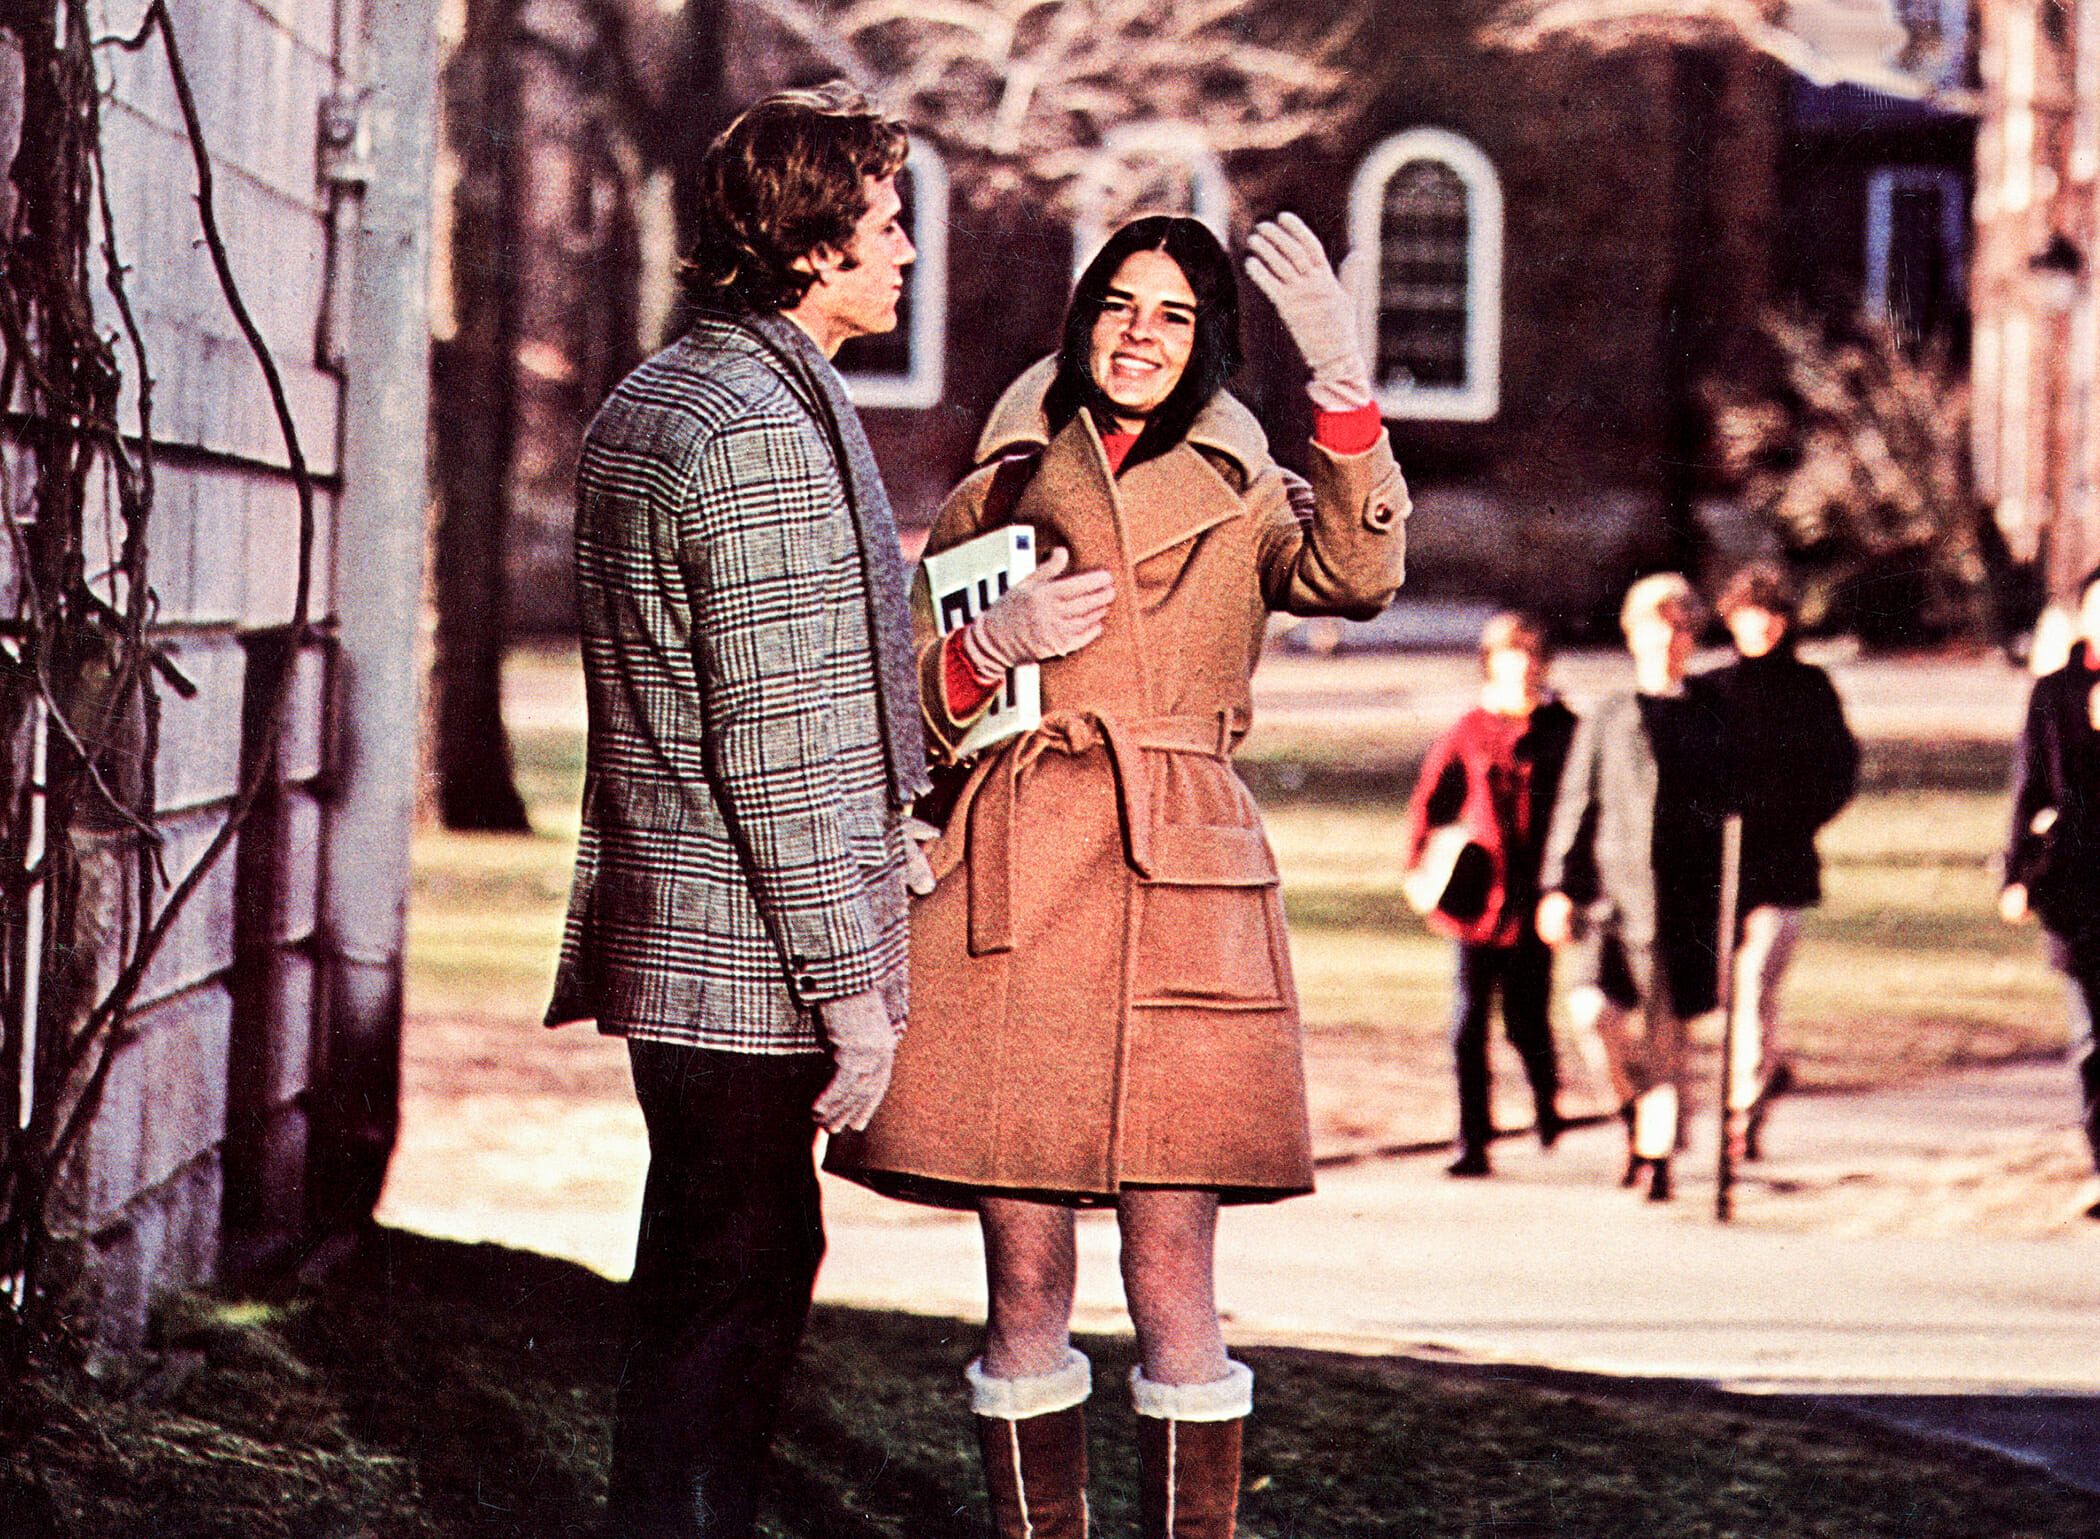 Great-Winter-Coats-Love-Story-Ali-MacGraw-Everett-Collection-Man-Repeller-January-2019-1-of-1-copy.jpg